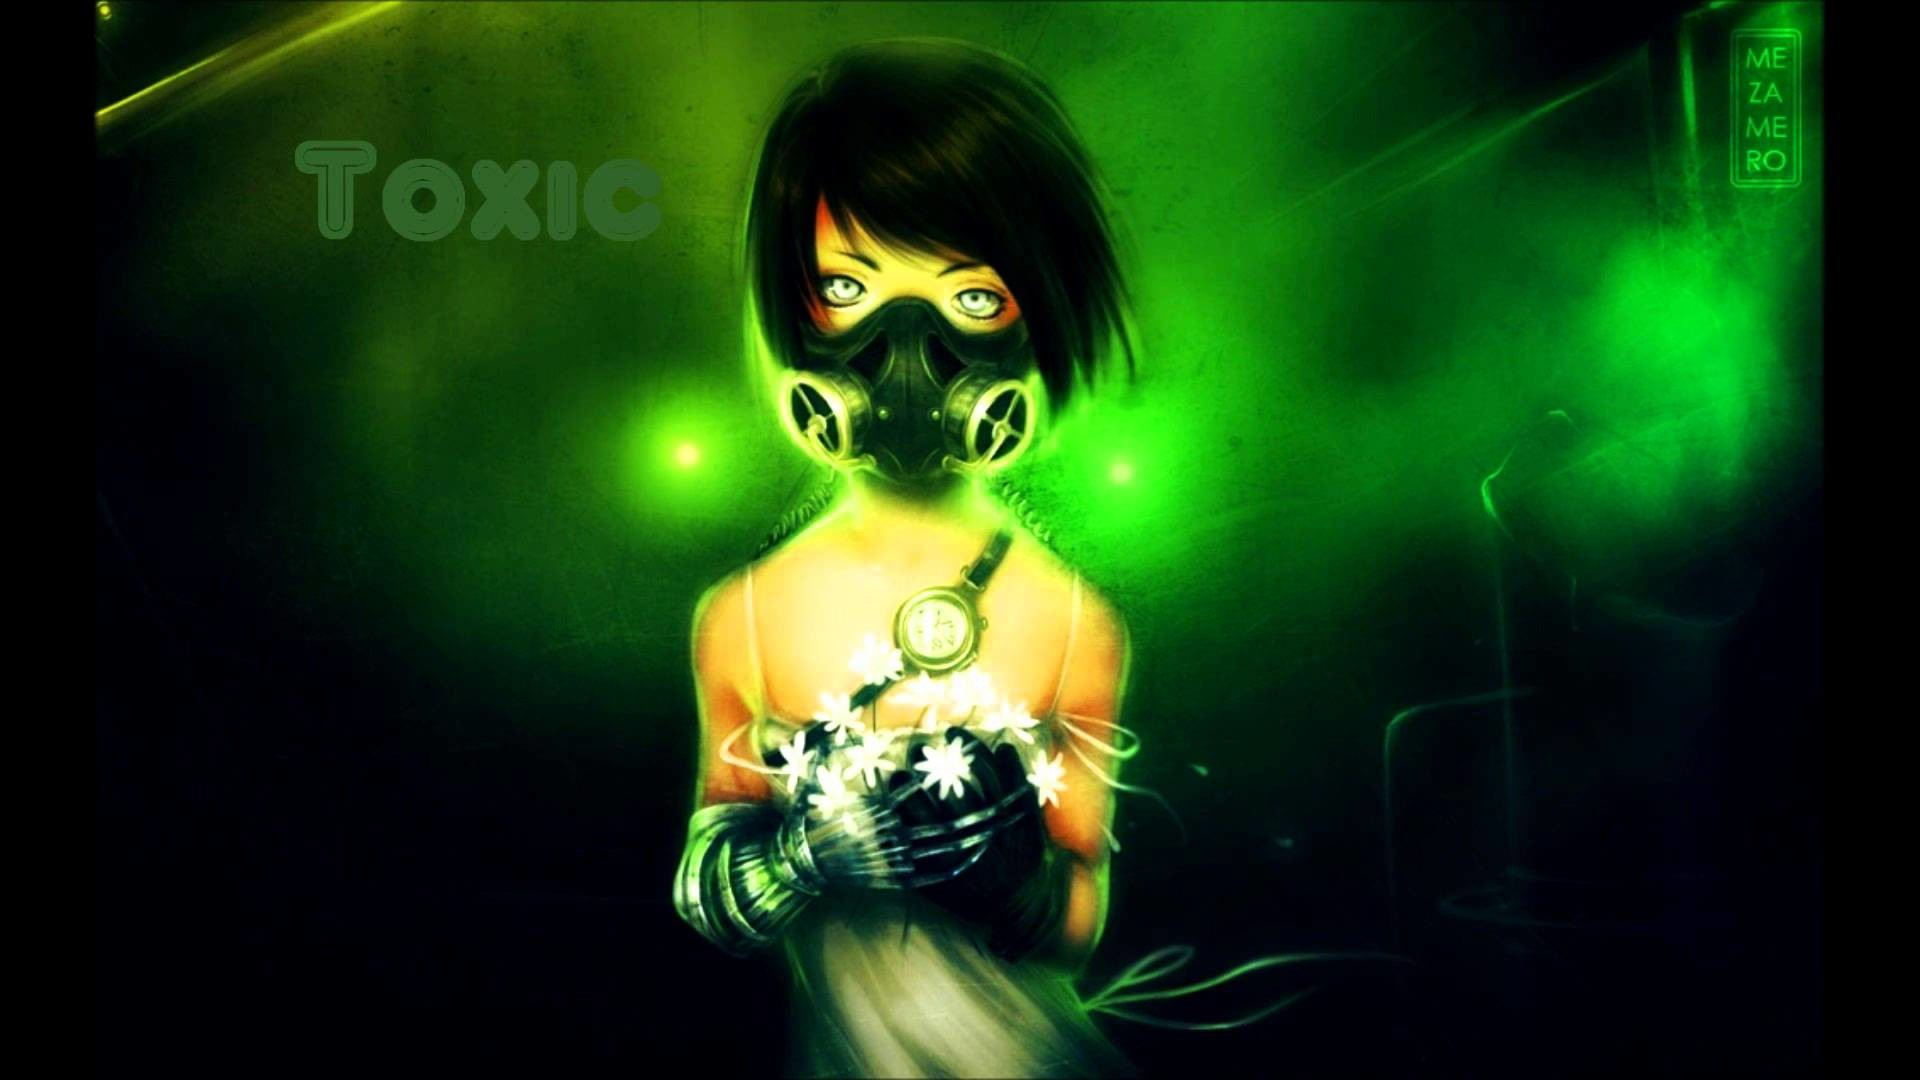 toxic mask wallpaper  53  images